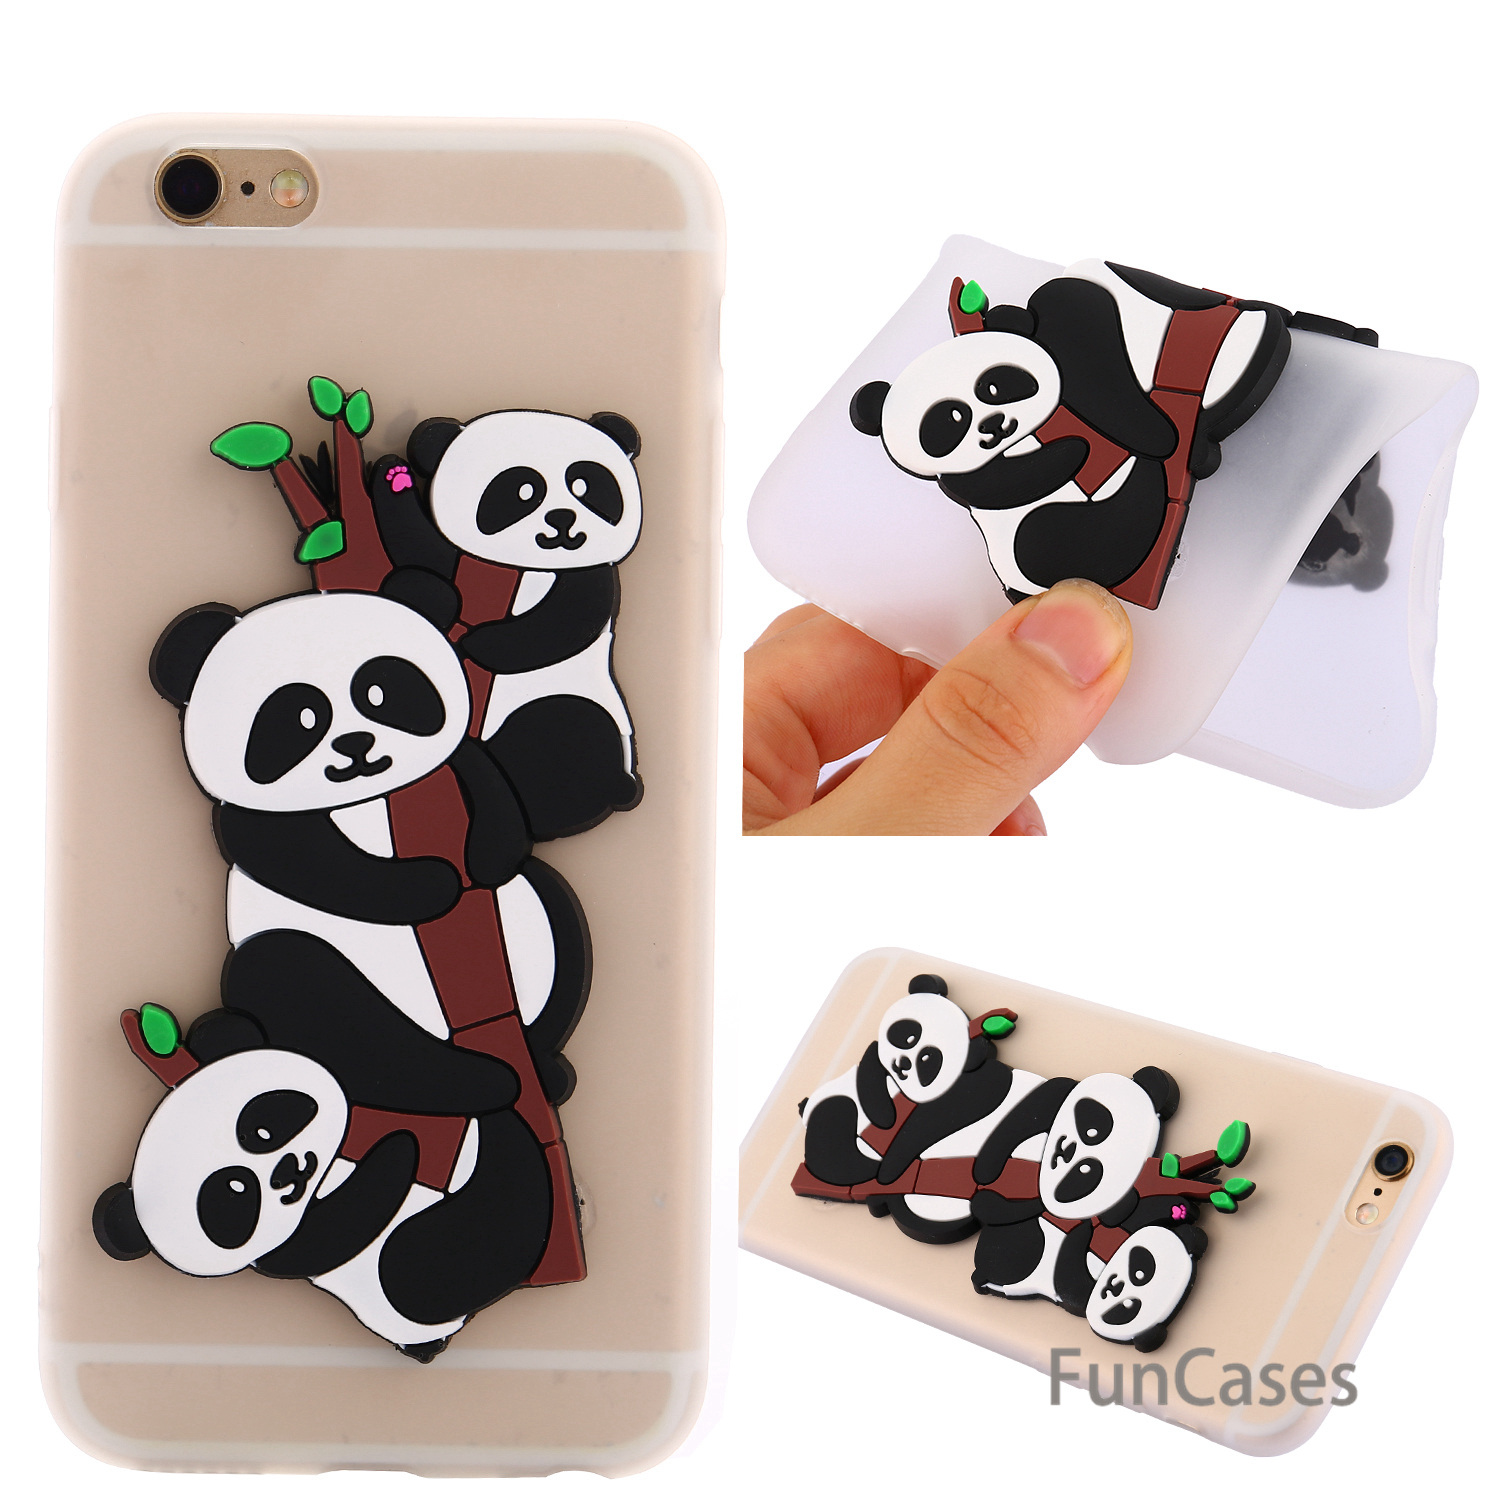 Candy Case sFor Funda iPhone 6 Soft Silicone Phone Case Shell Plain Phone Accessory iPhone 6S Vente Case For iPhone aifone 6